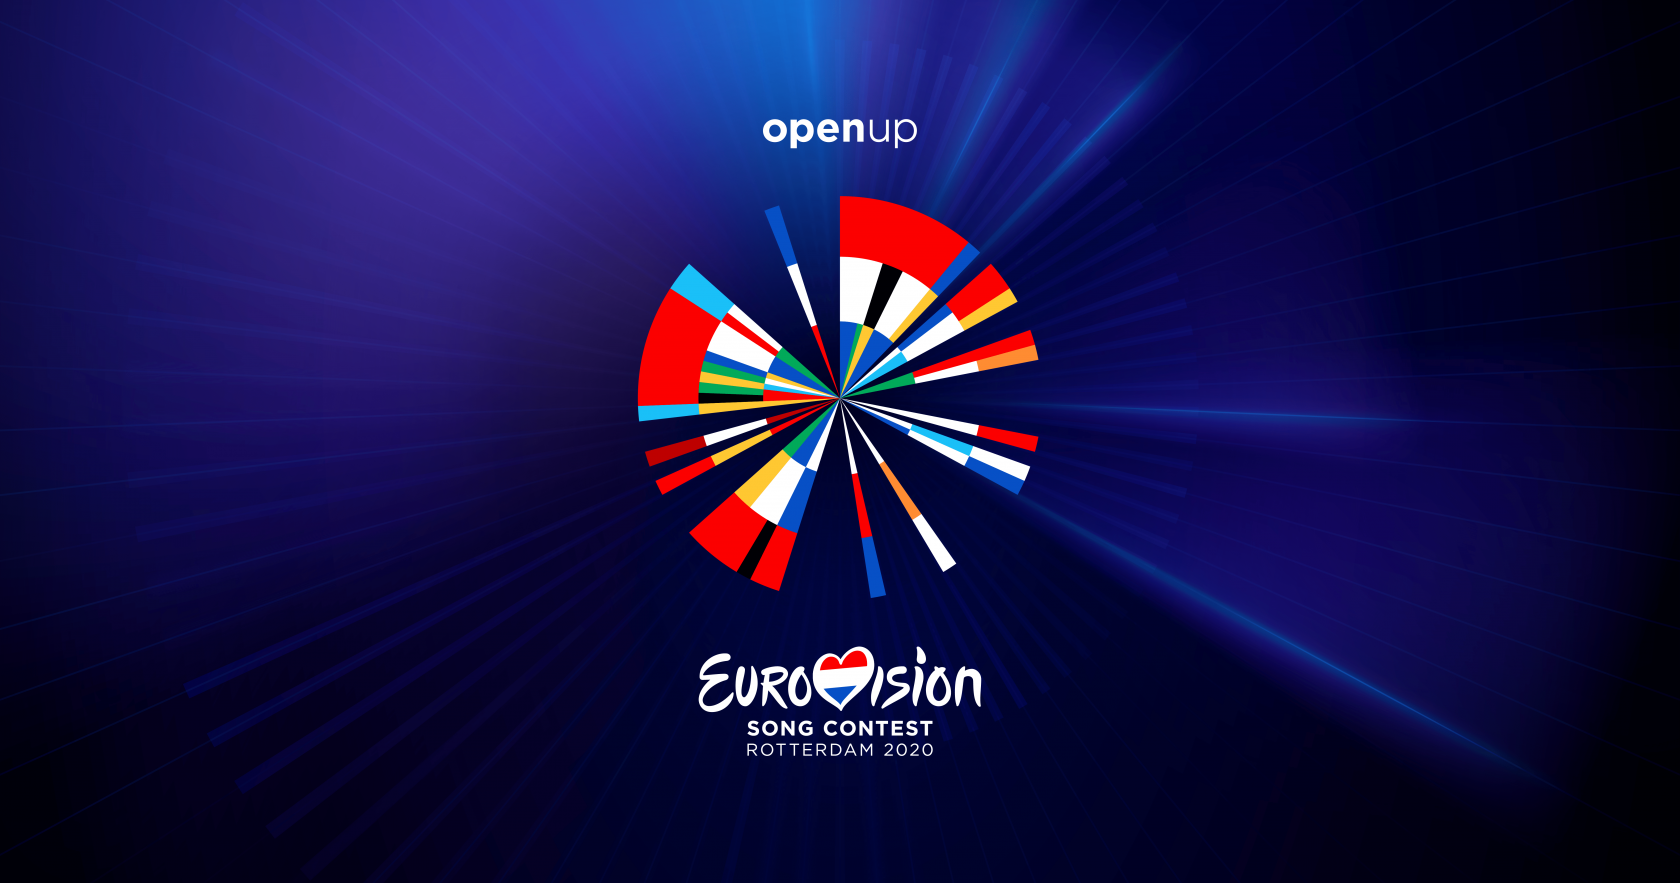 Keyvisual des Eurovision Song Contest 2020 in Rotterdam